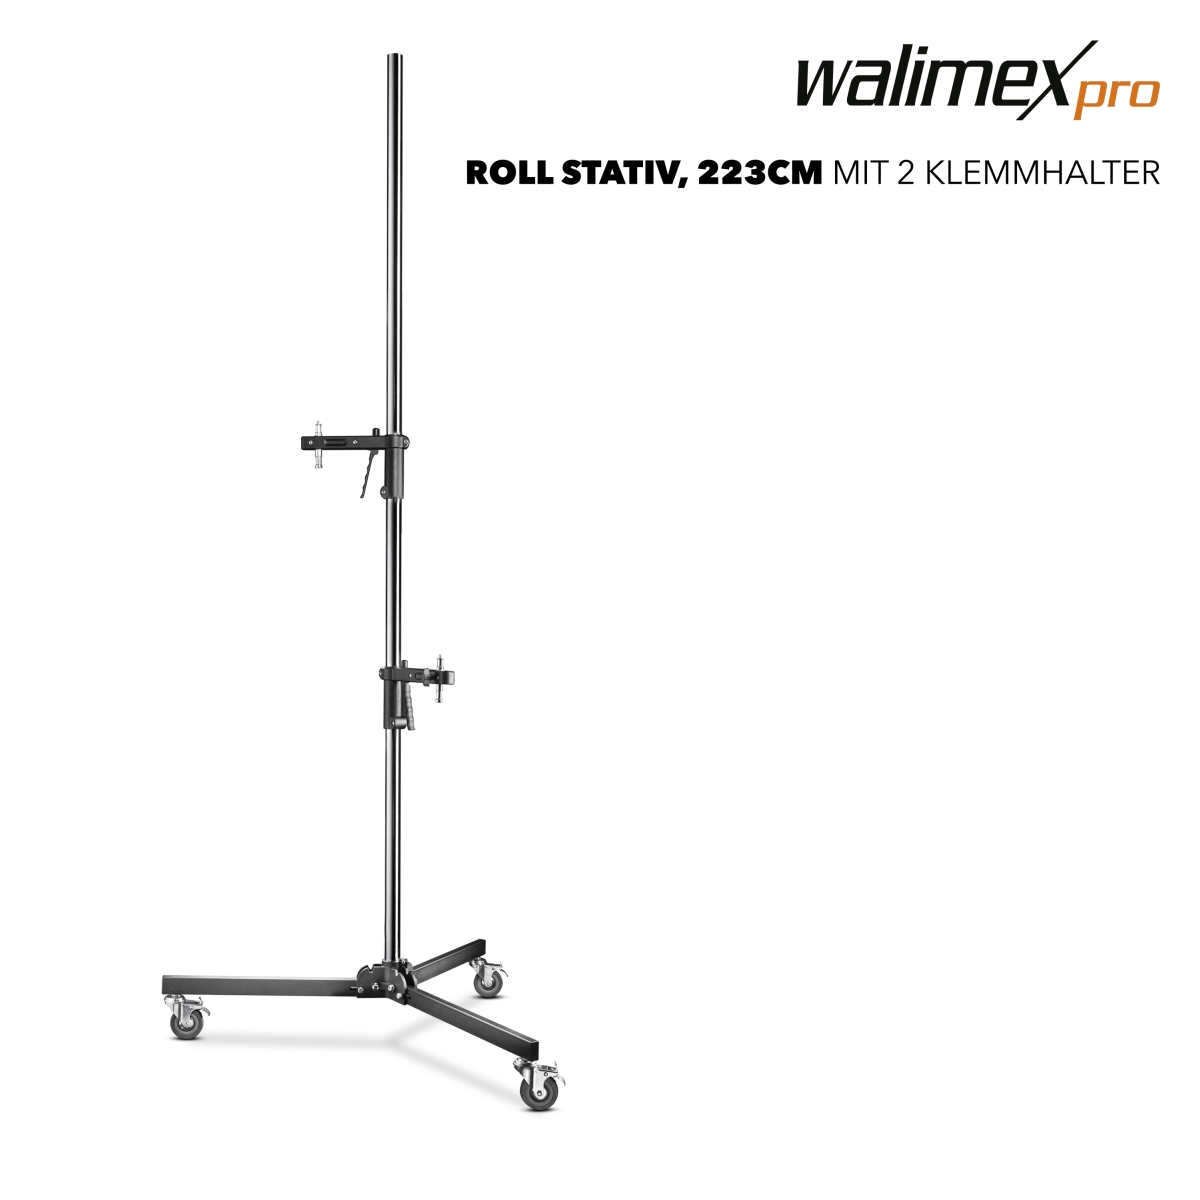 Walimex pro Wheeled Tripod with 2 Clamp Holders